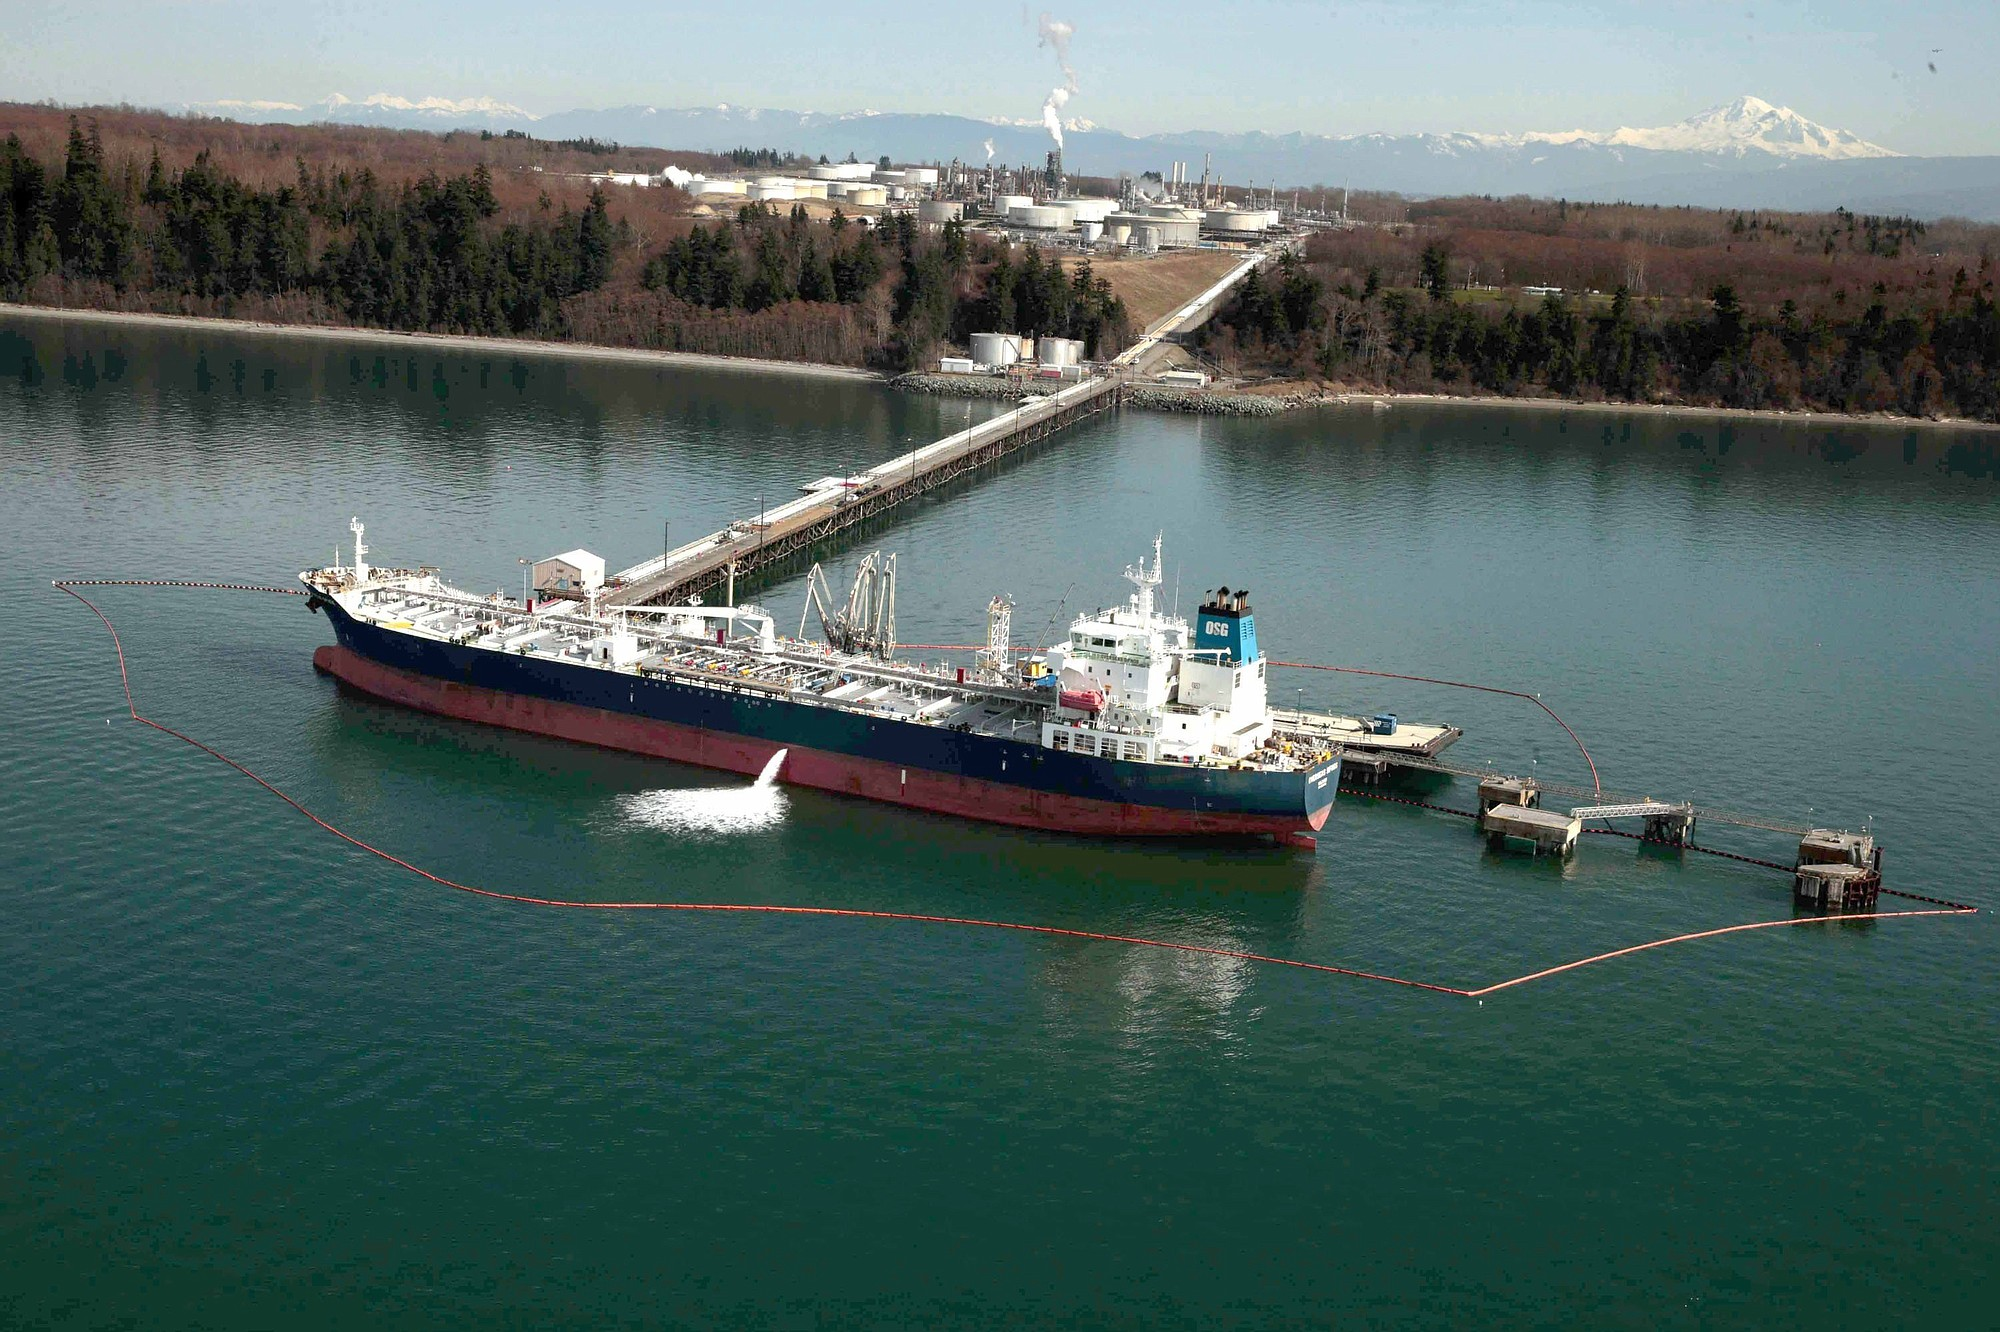 Oil tanker at Cherry Point Oil Terminal (Credit: The Columbian)